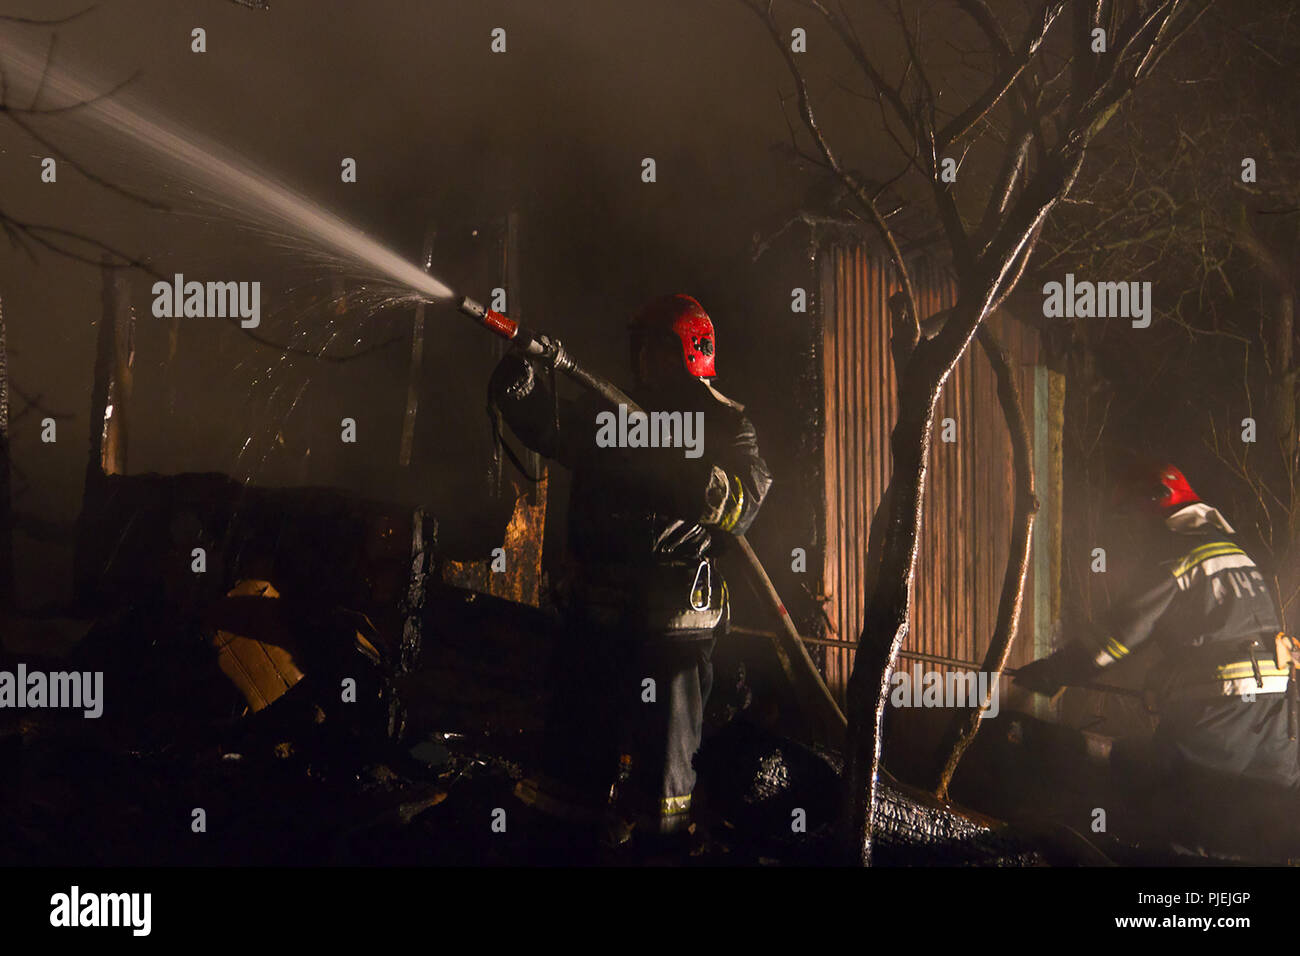 Firefighters extinguish the house. Night, it's snowing. - Stock Image